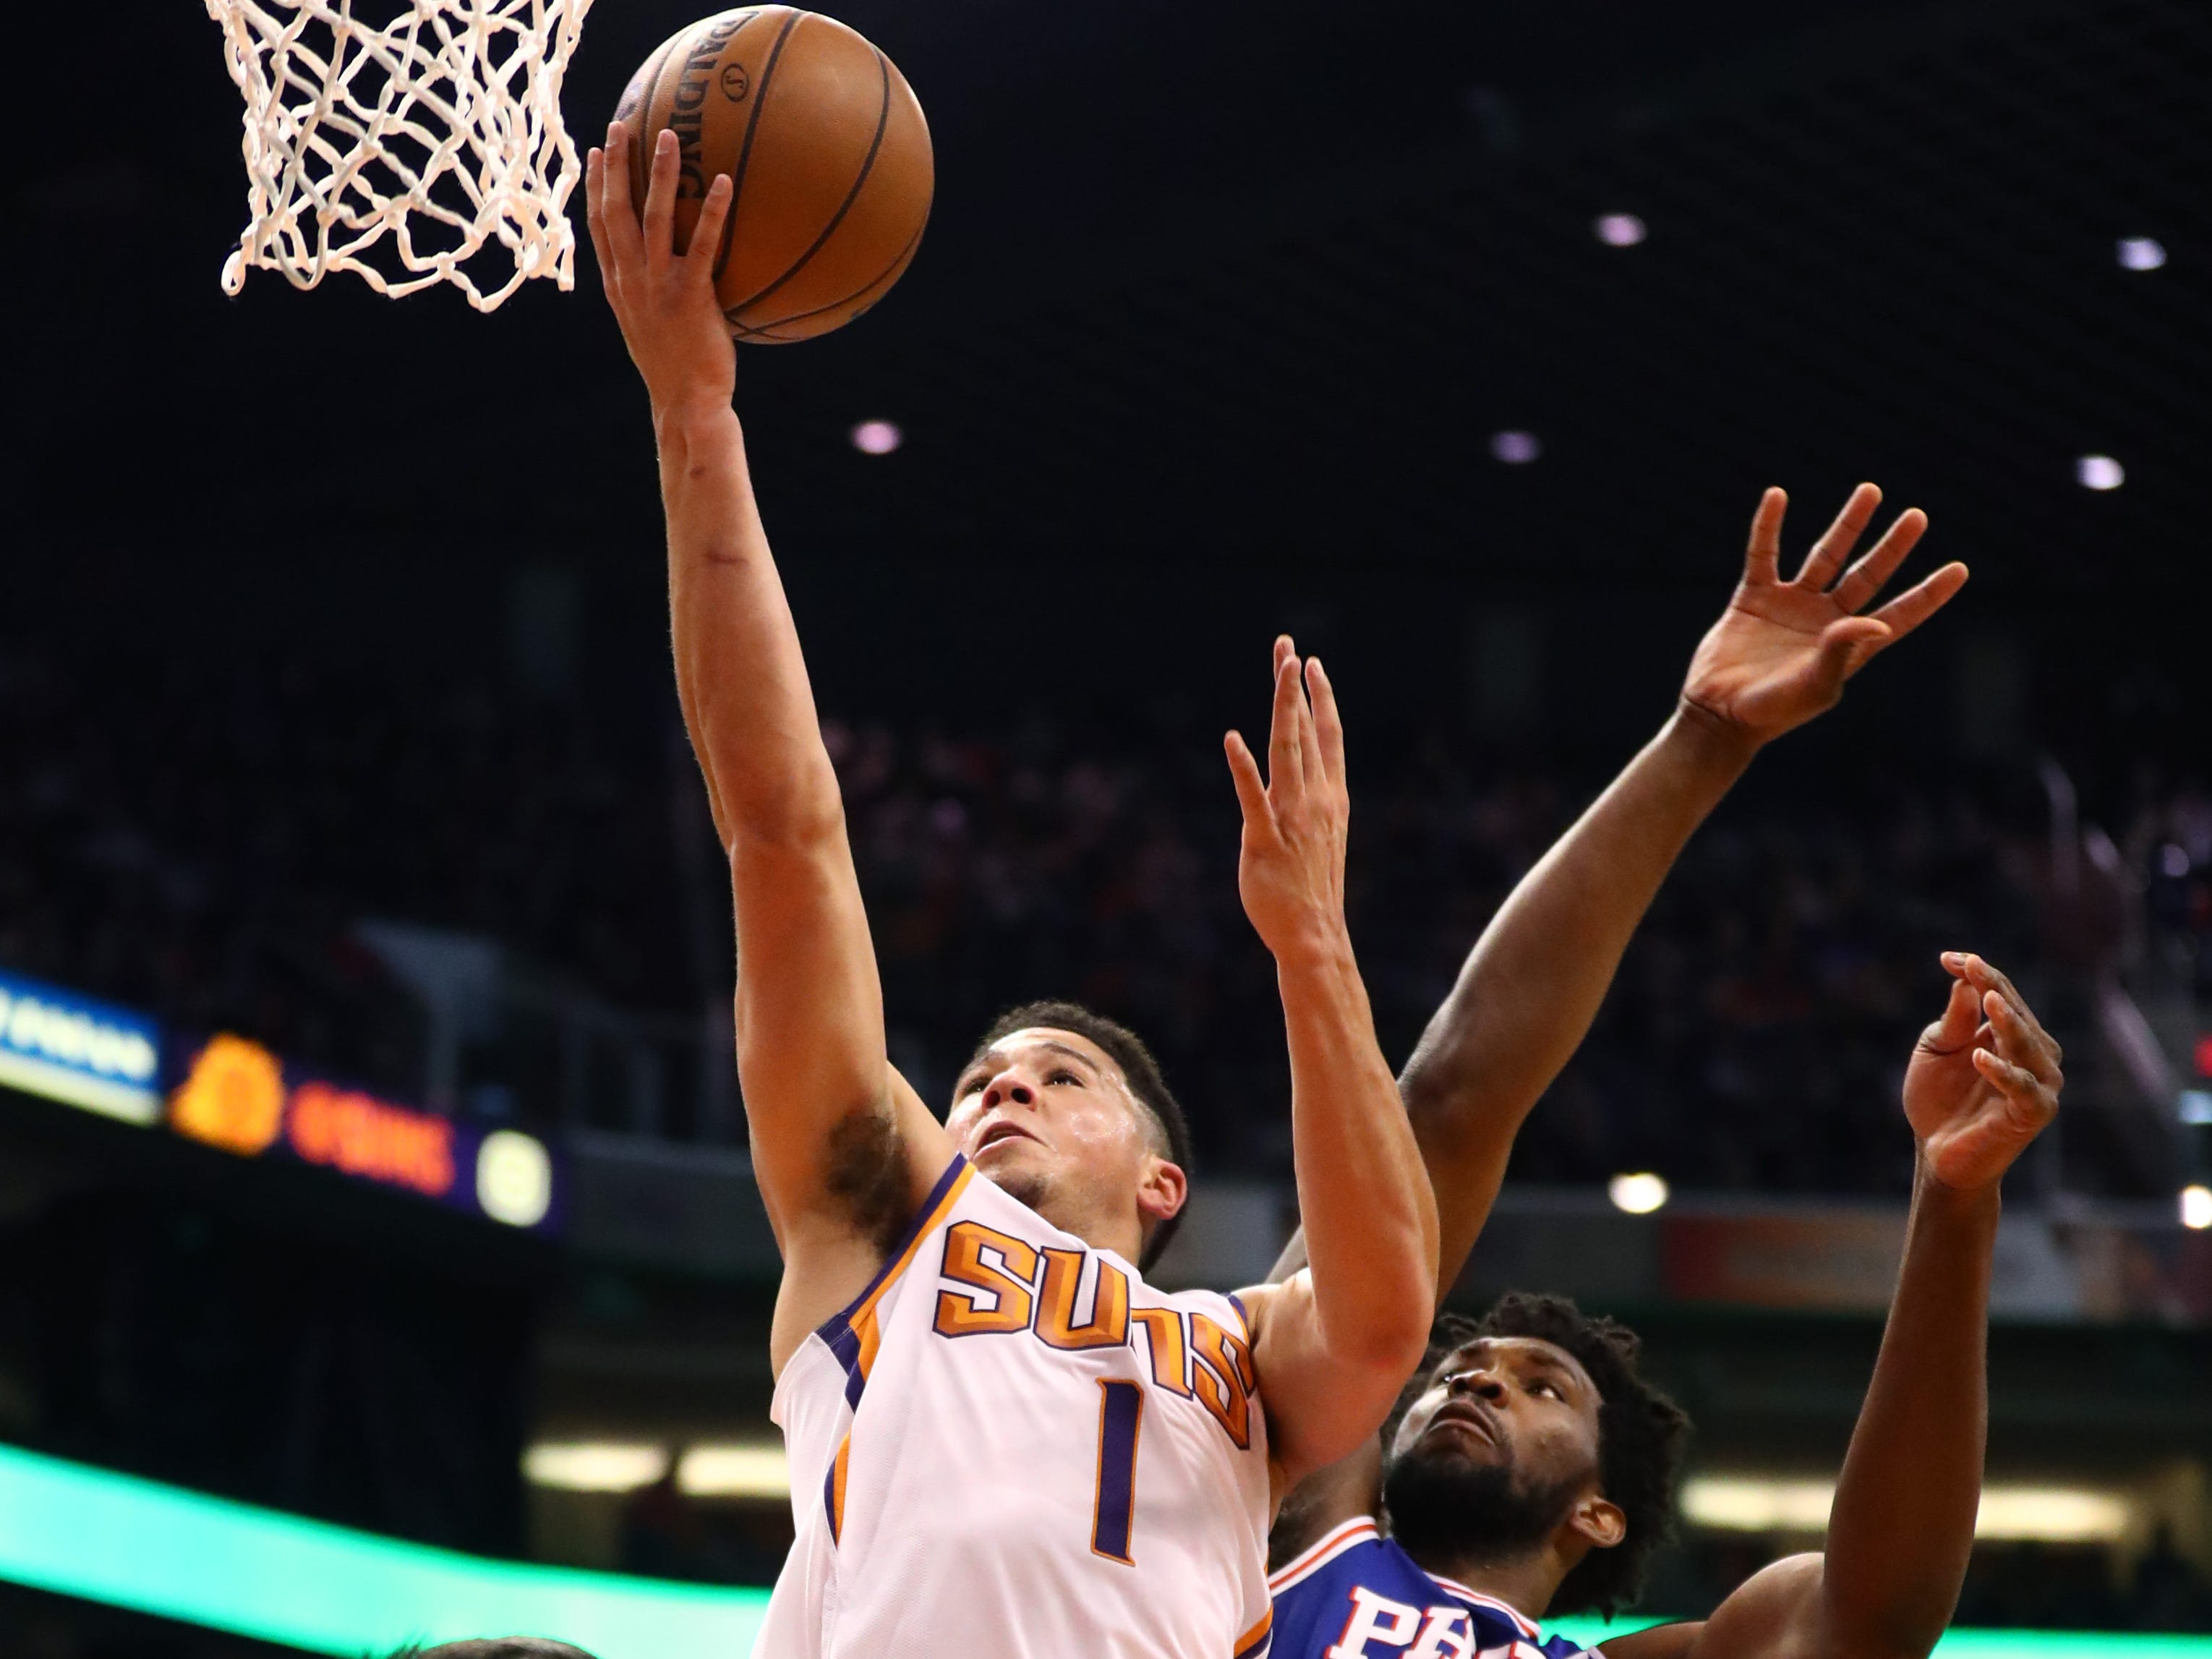 Jan 2, 2019; Phoenix, AZ, USA; Phoenix Suns guard Devin Booker (1) against Philadelphia 76ers center Joel Embiid (21)  in the first half at Talking Stick Resort Arena. Mandatory Credit: Mark J. Rebilas-USA TODAY Sports